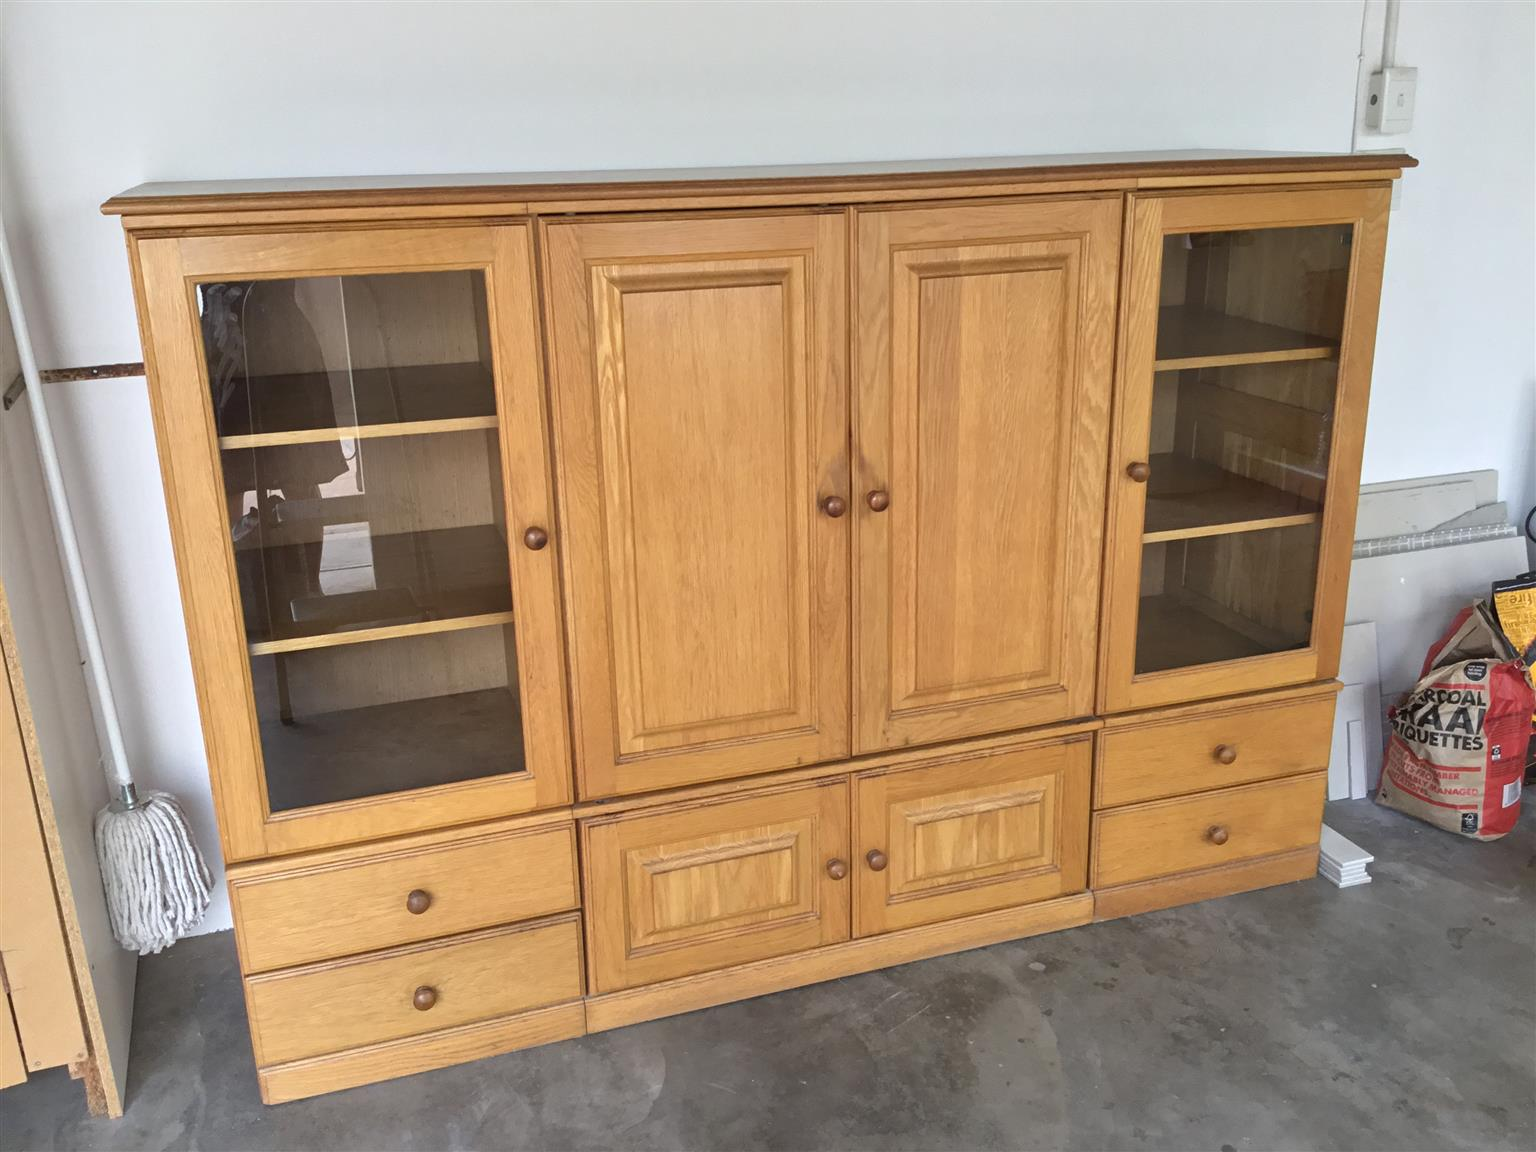 Solid oak TV unit for sale